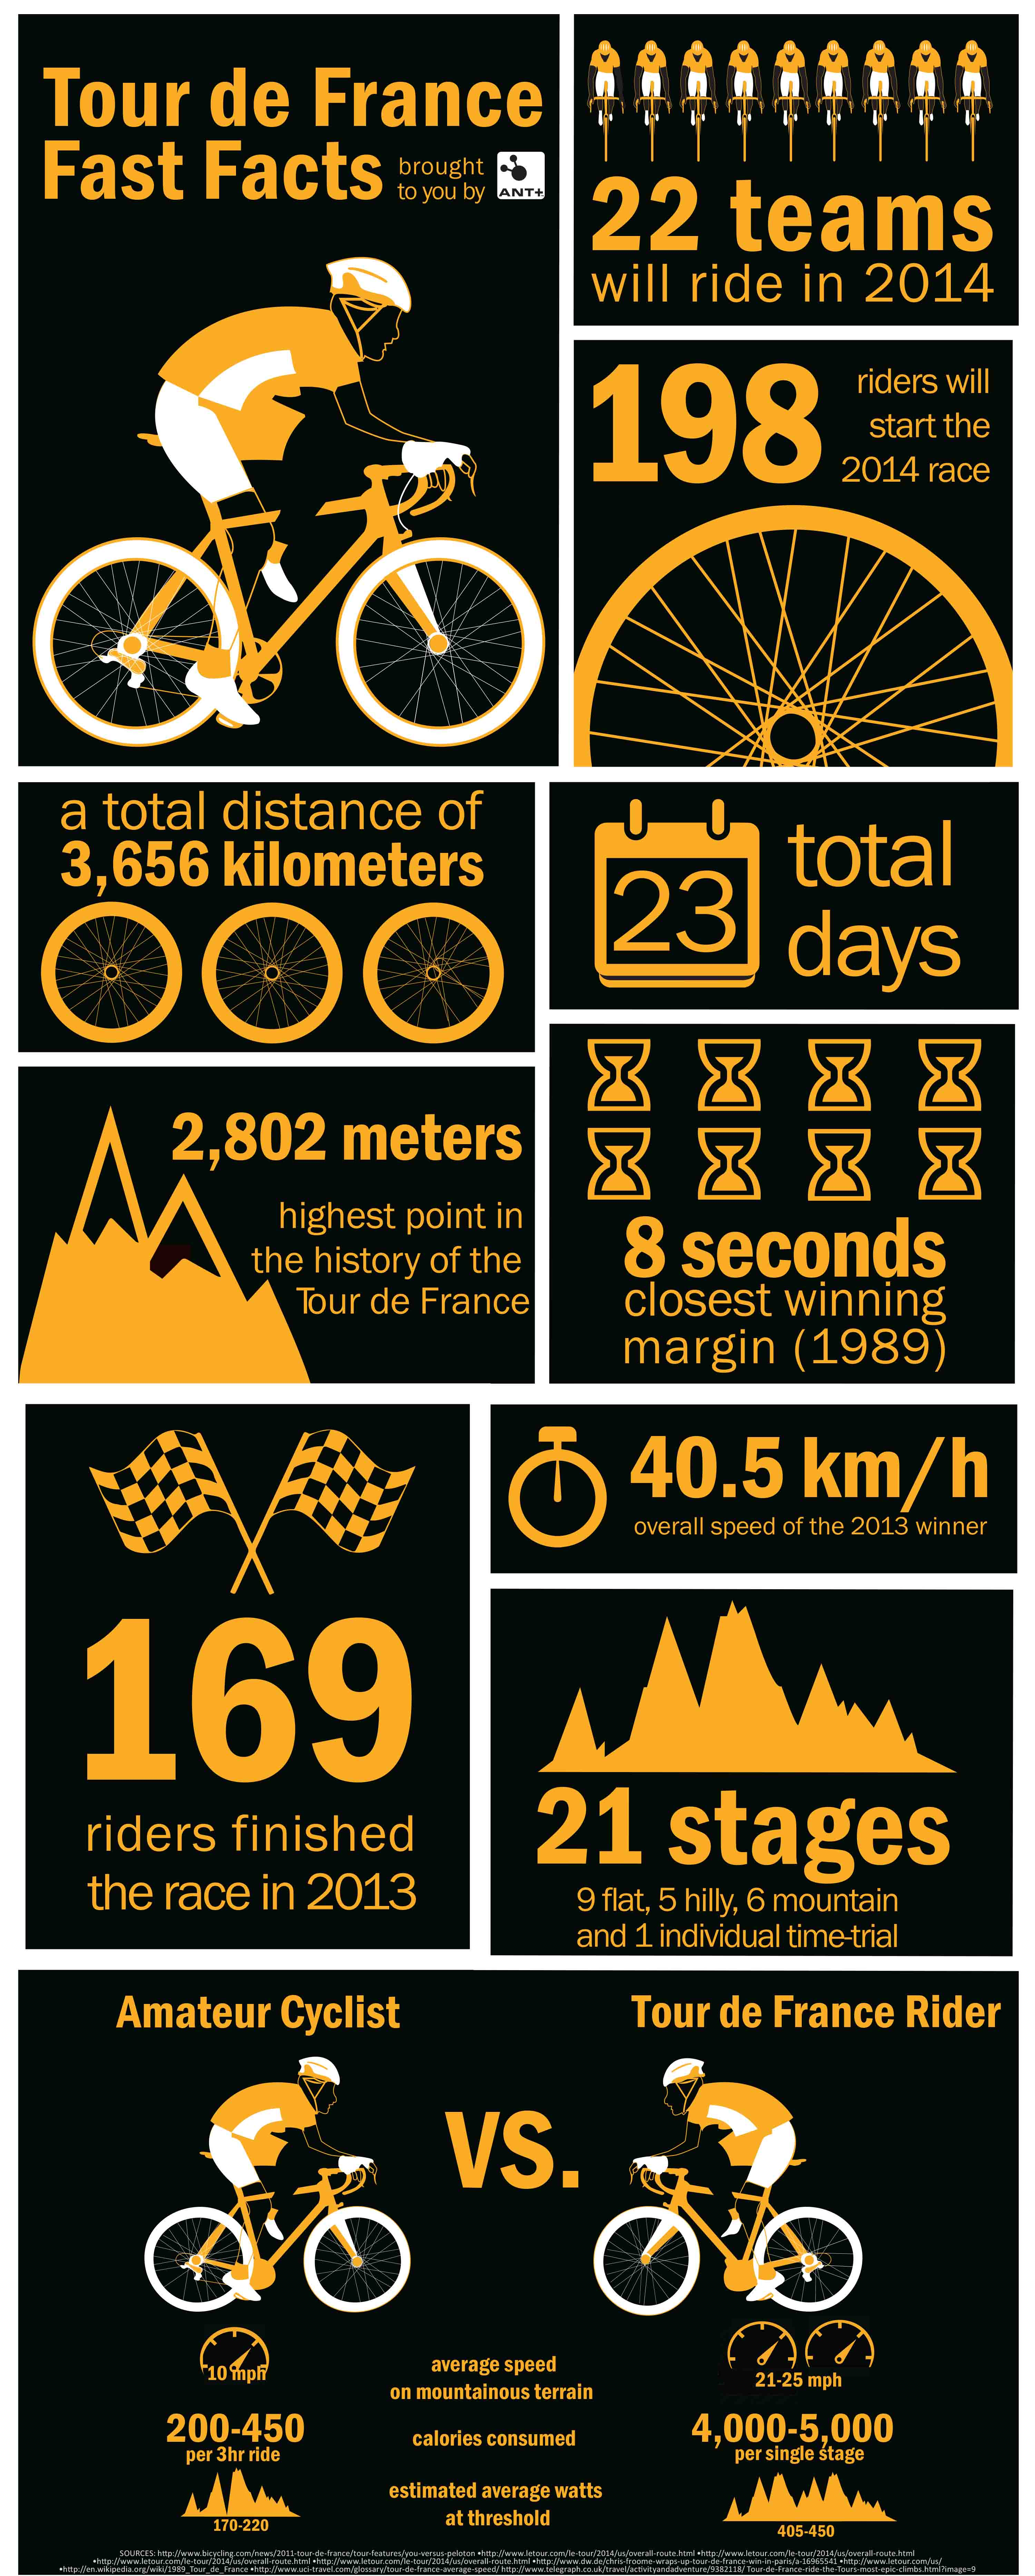 The Tour de France 2014 Facts